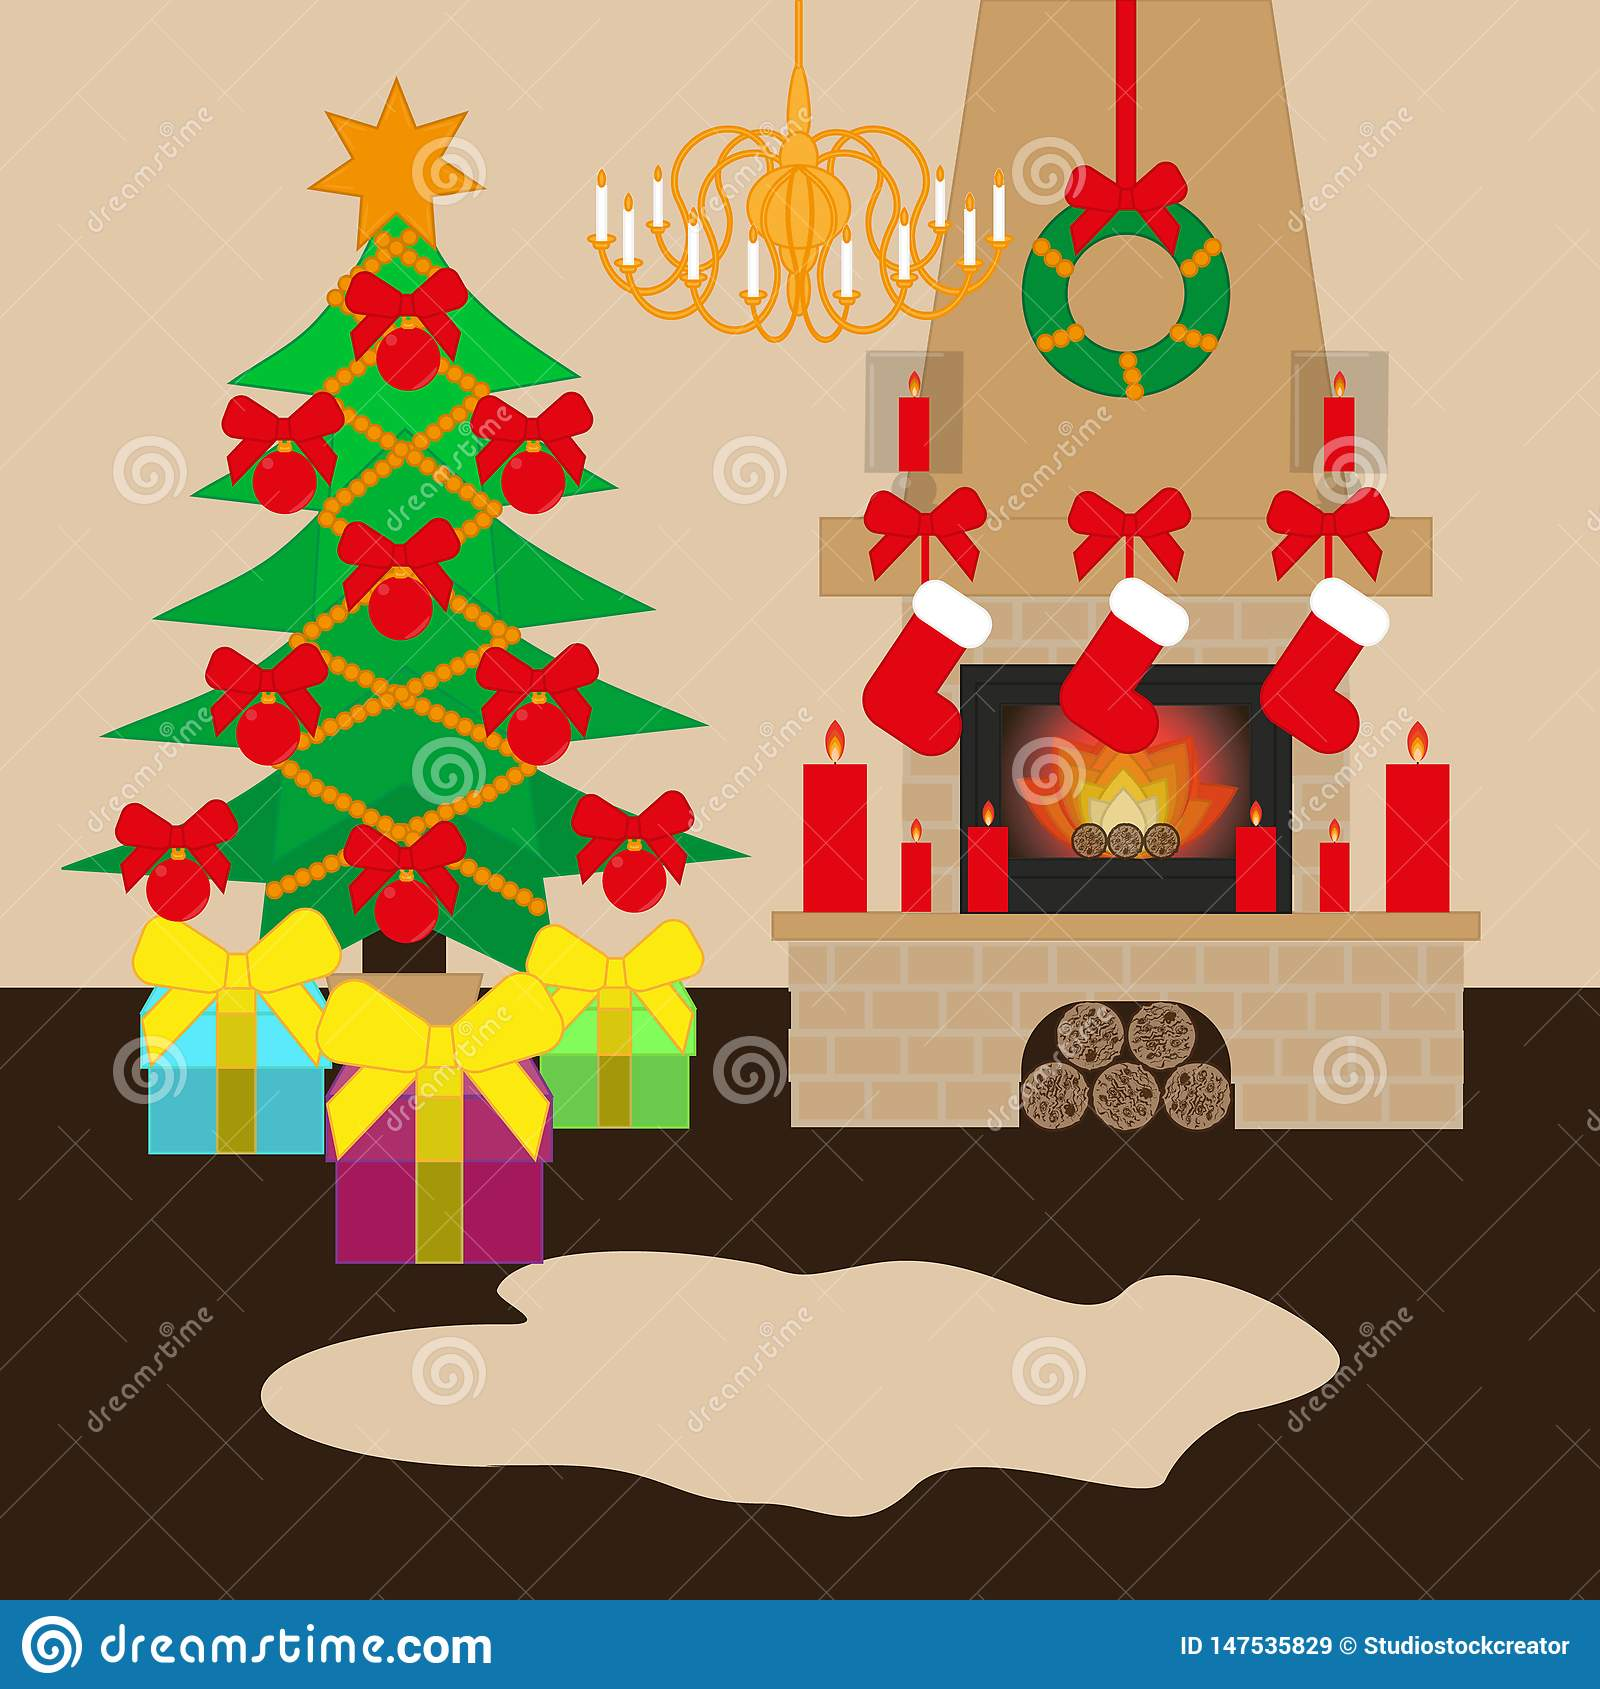 Christmas decorated room with xmas tree and fireplace. Flat style vector illustration.